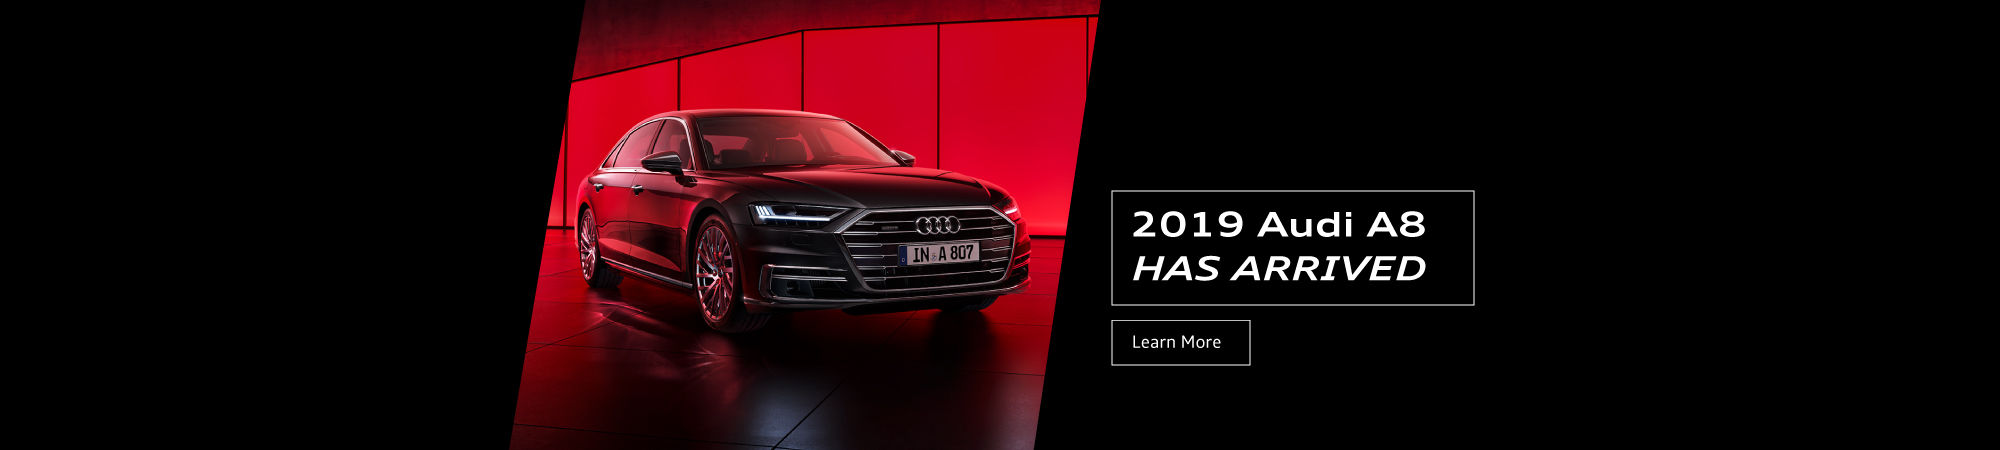 2019 Audi A8 Has Arrived